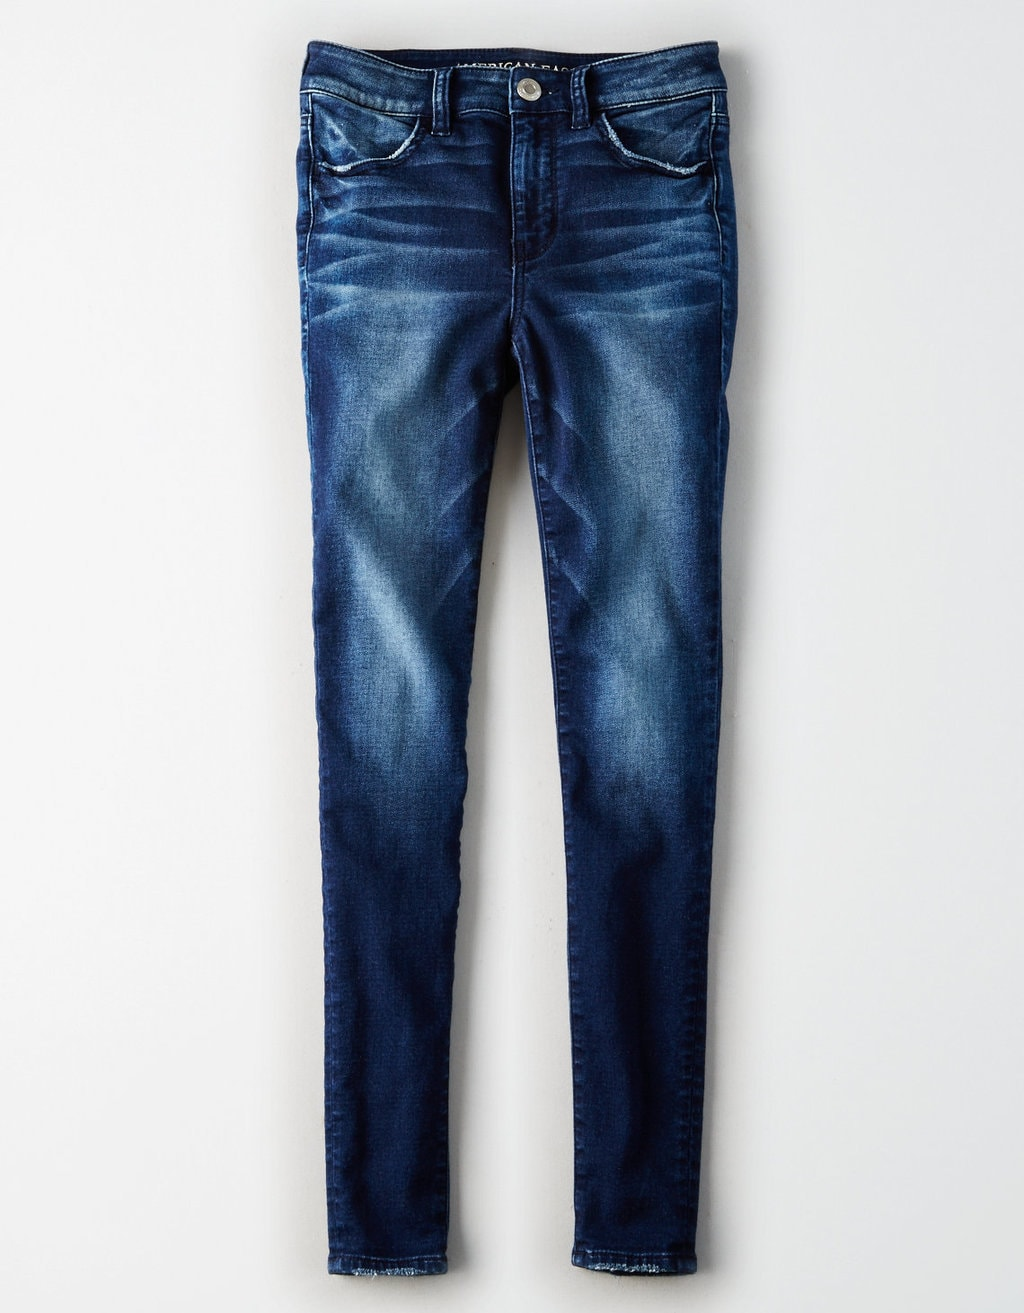 A pair of mid-wash jeans